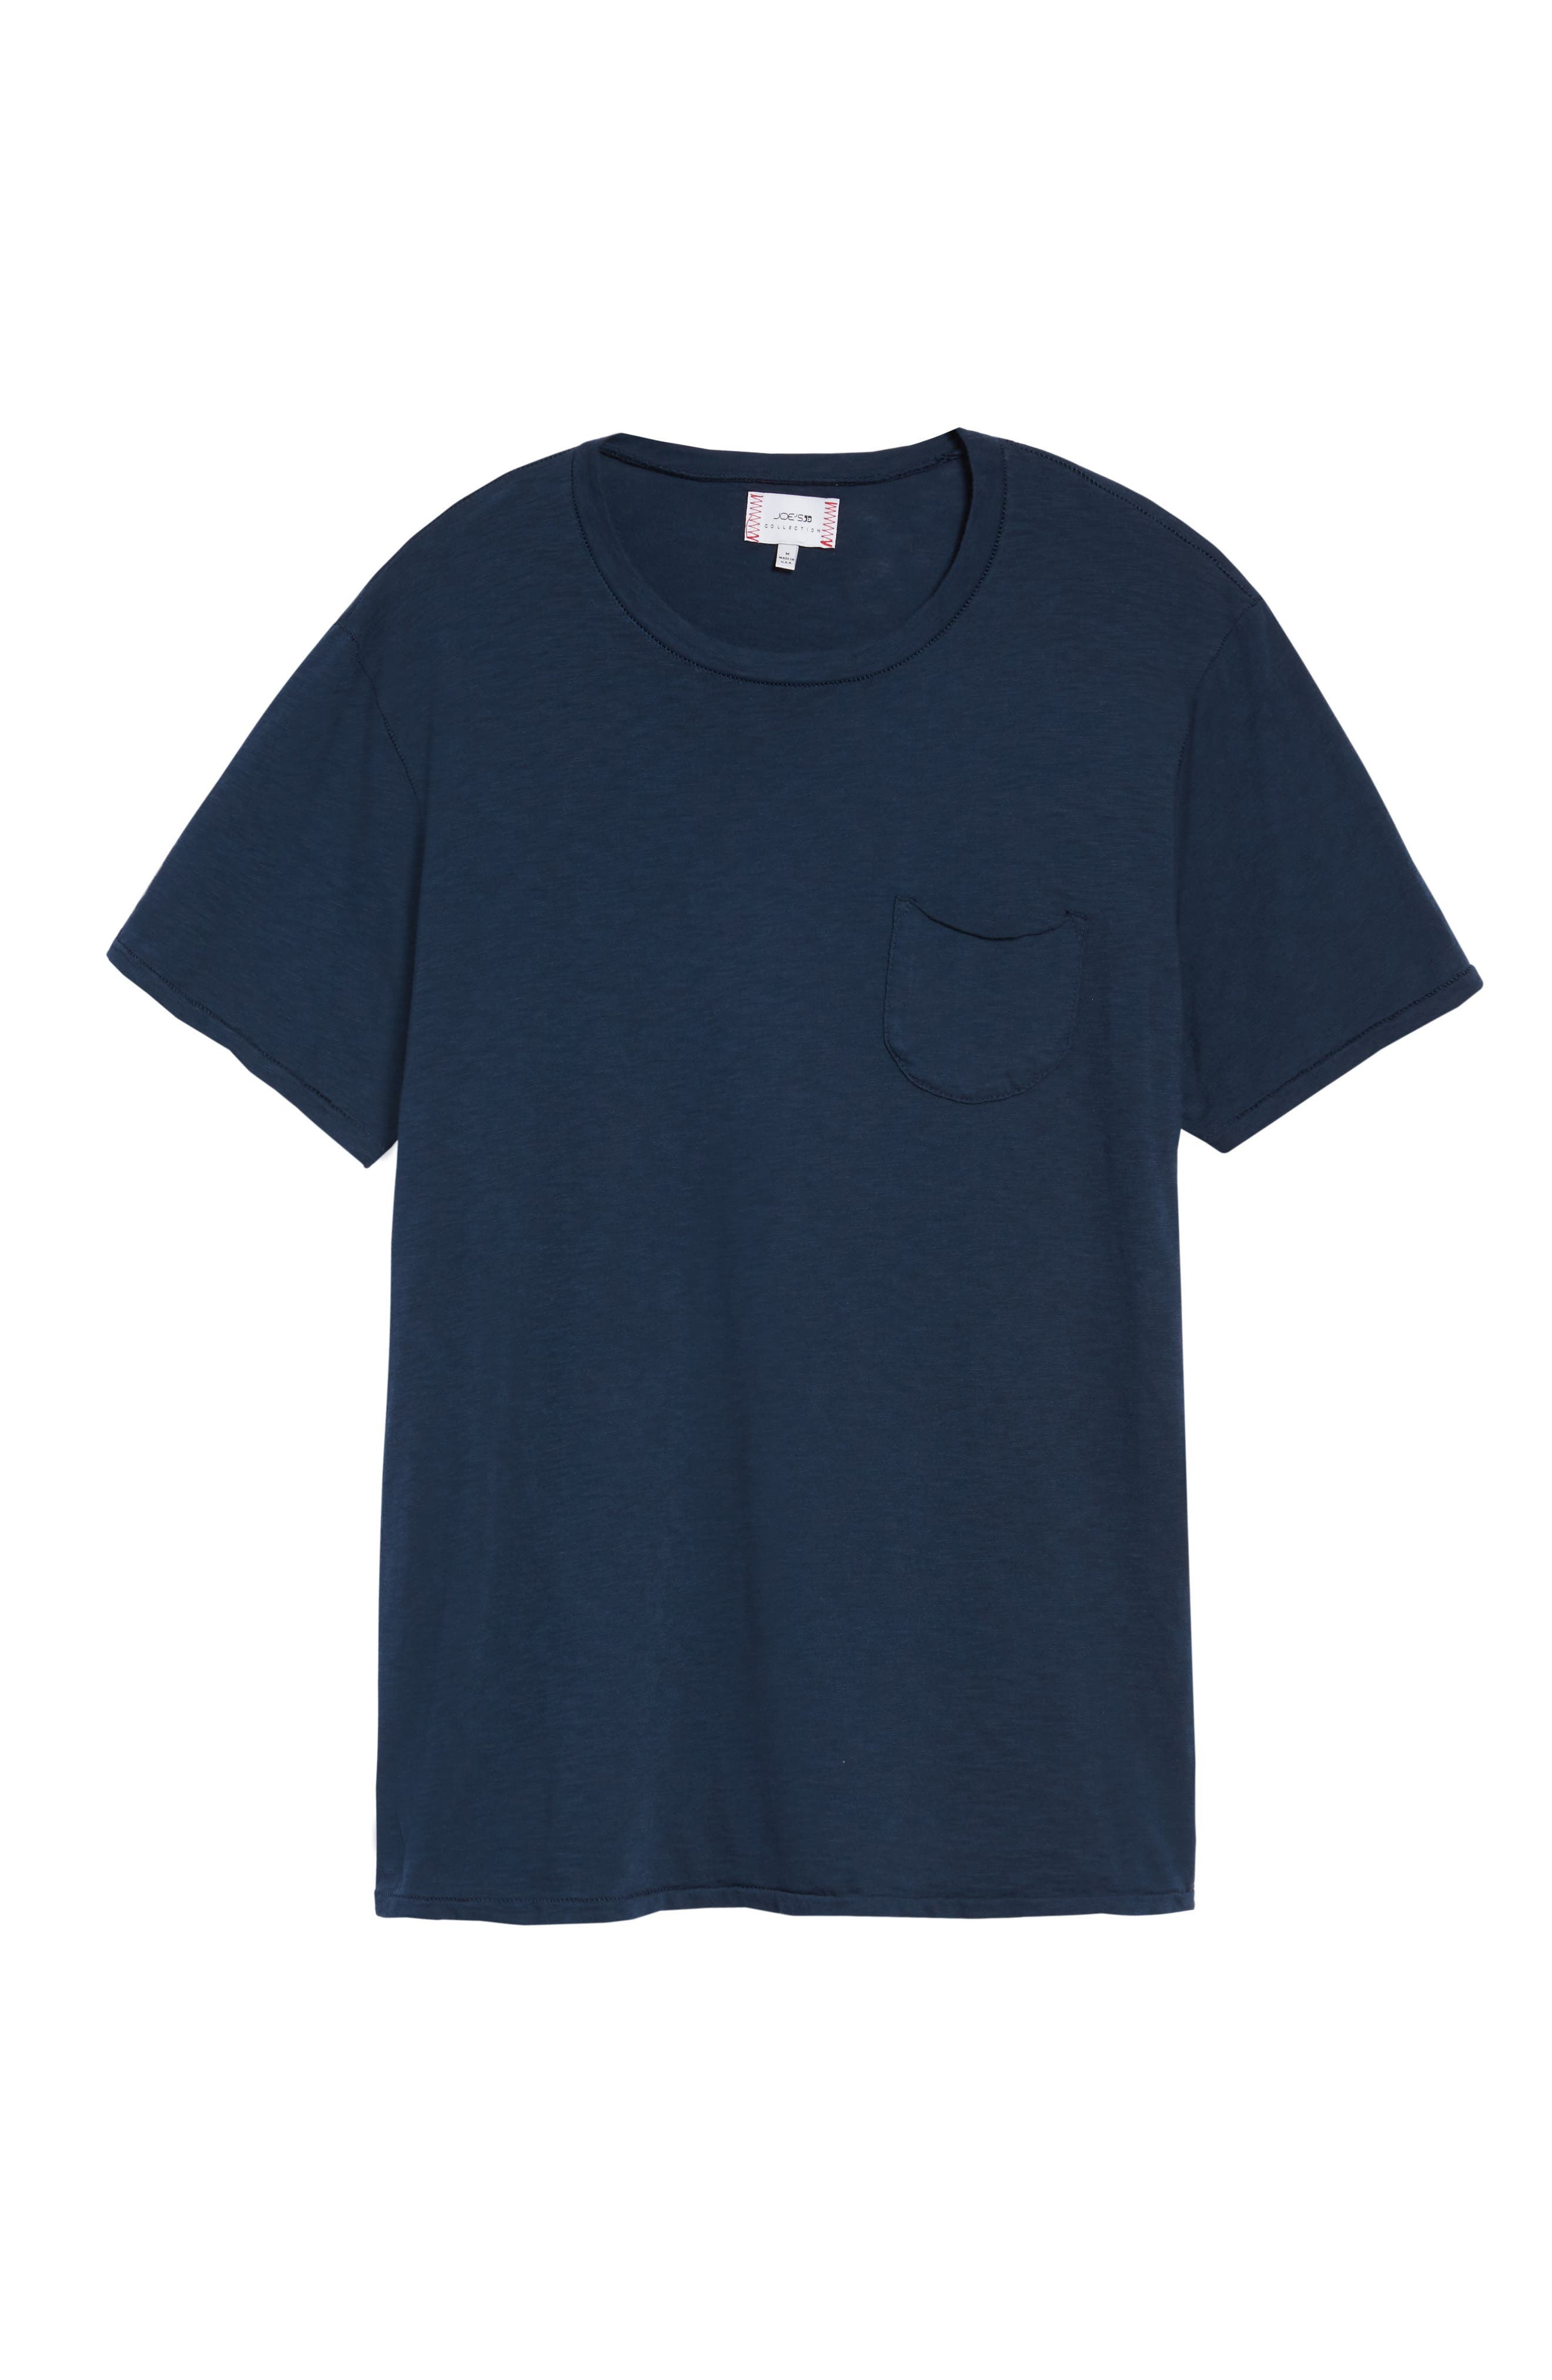 Chase Classic Crewneck T-Shirt,                             Alternate thumbnail 5, color,                             Navy